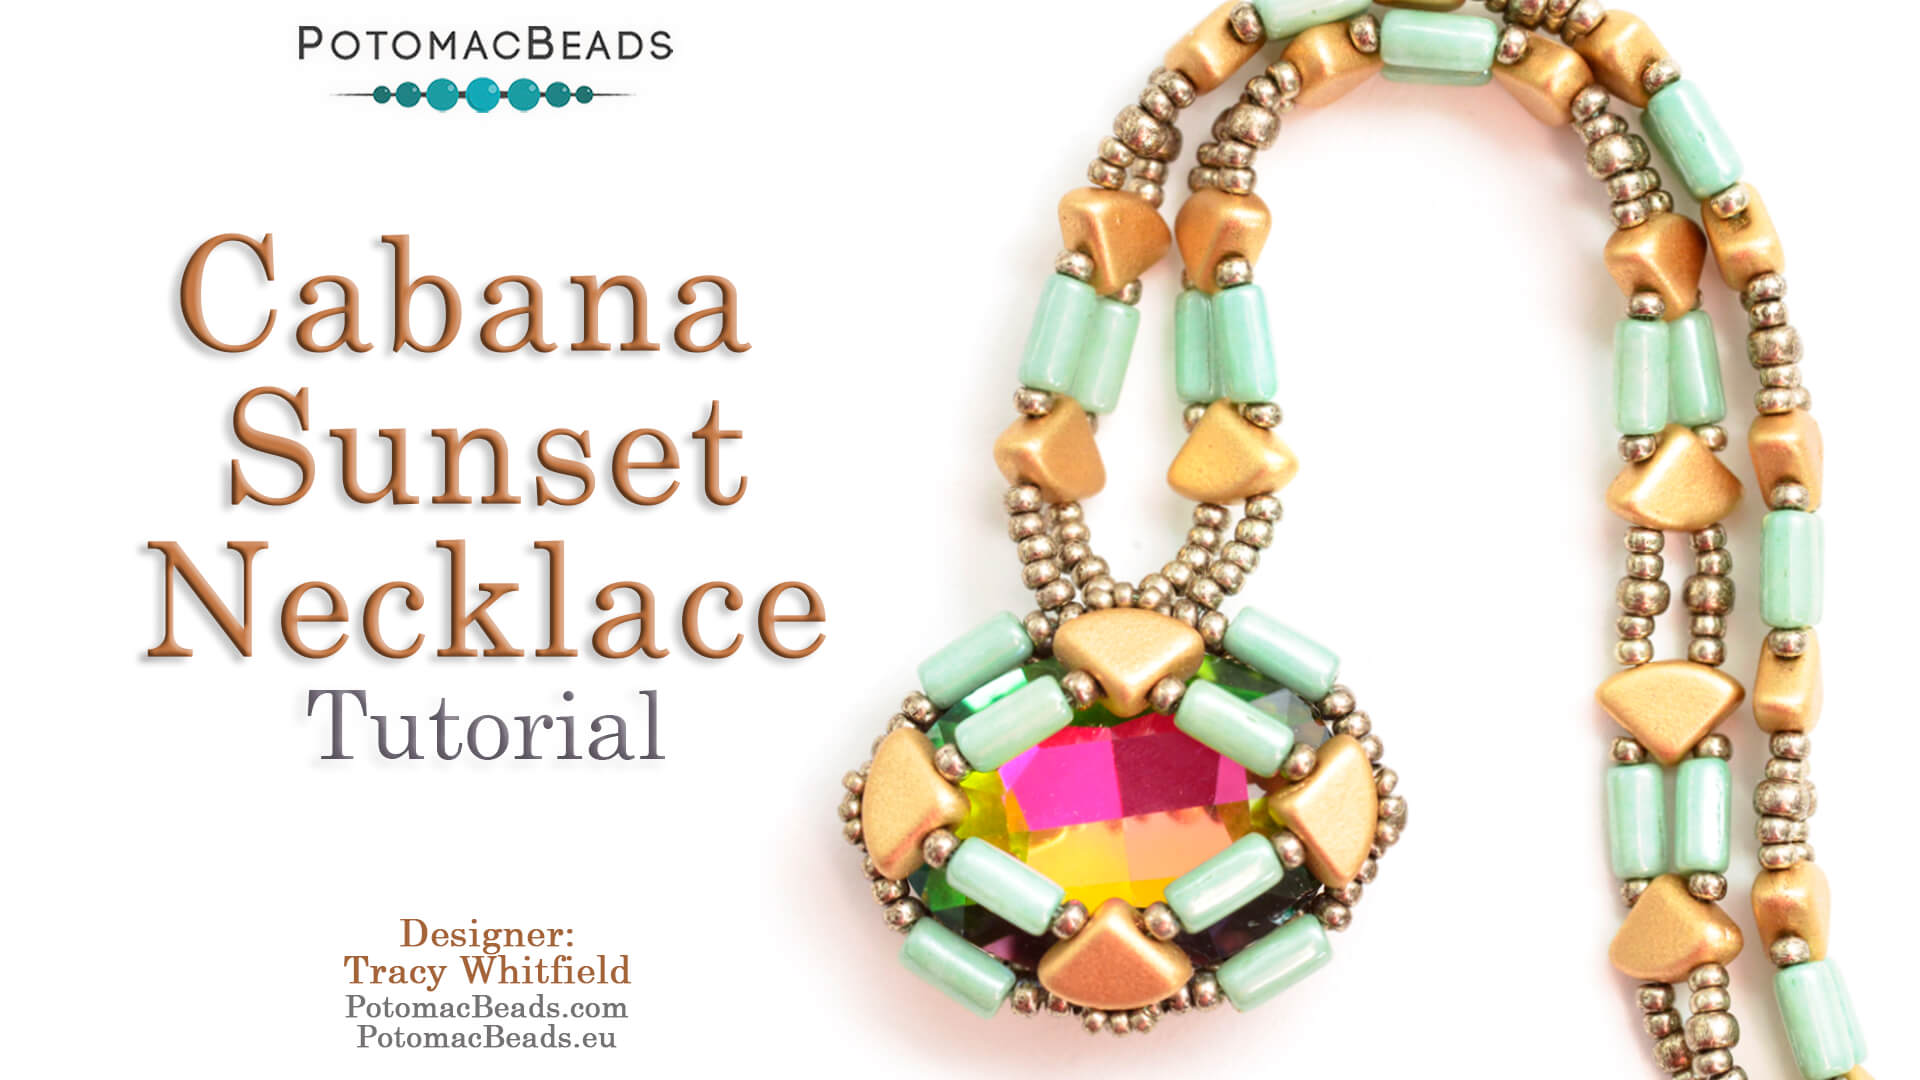 How to Bead Jewelry / Videos Sorted by Beads / QuadBow & PieDuo Bead Videos / Cabana Sunset Necklace Tutorial